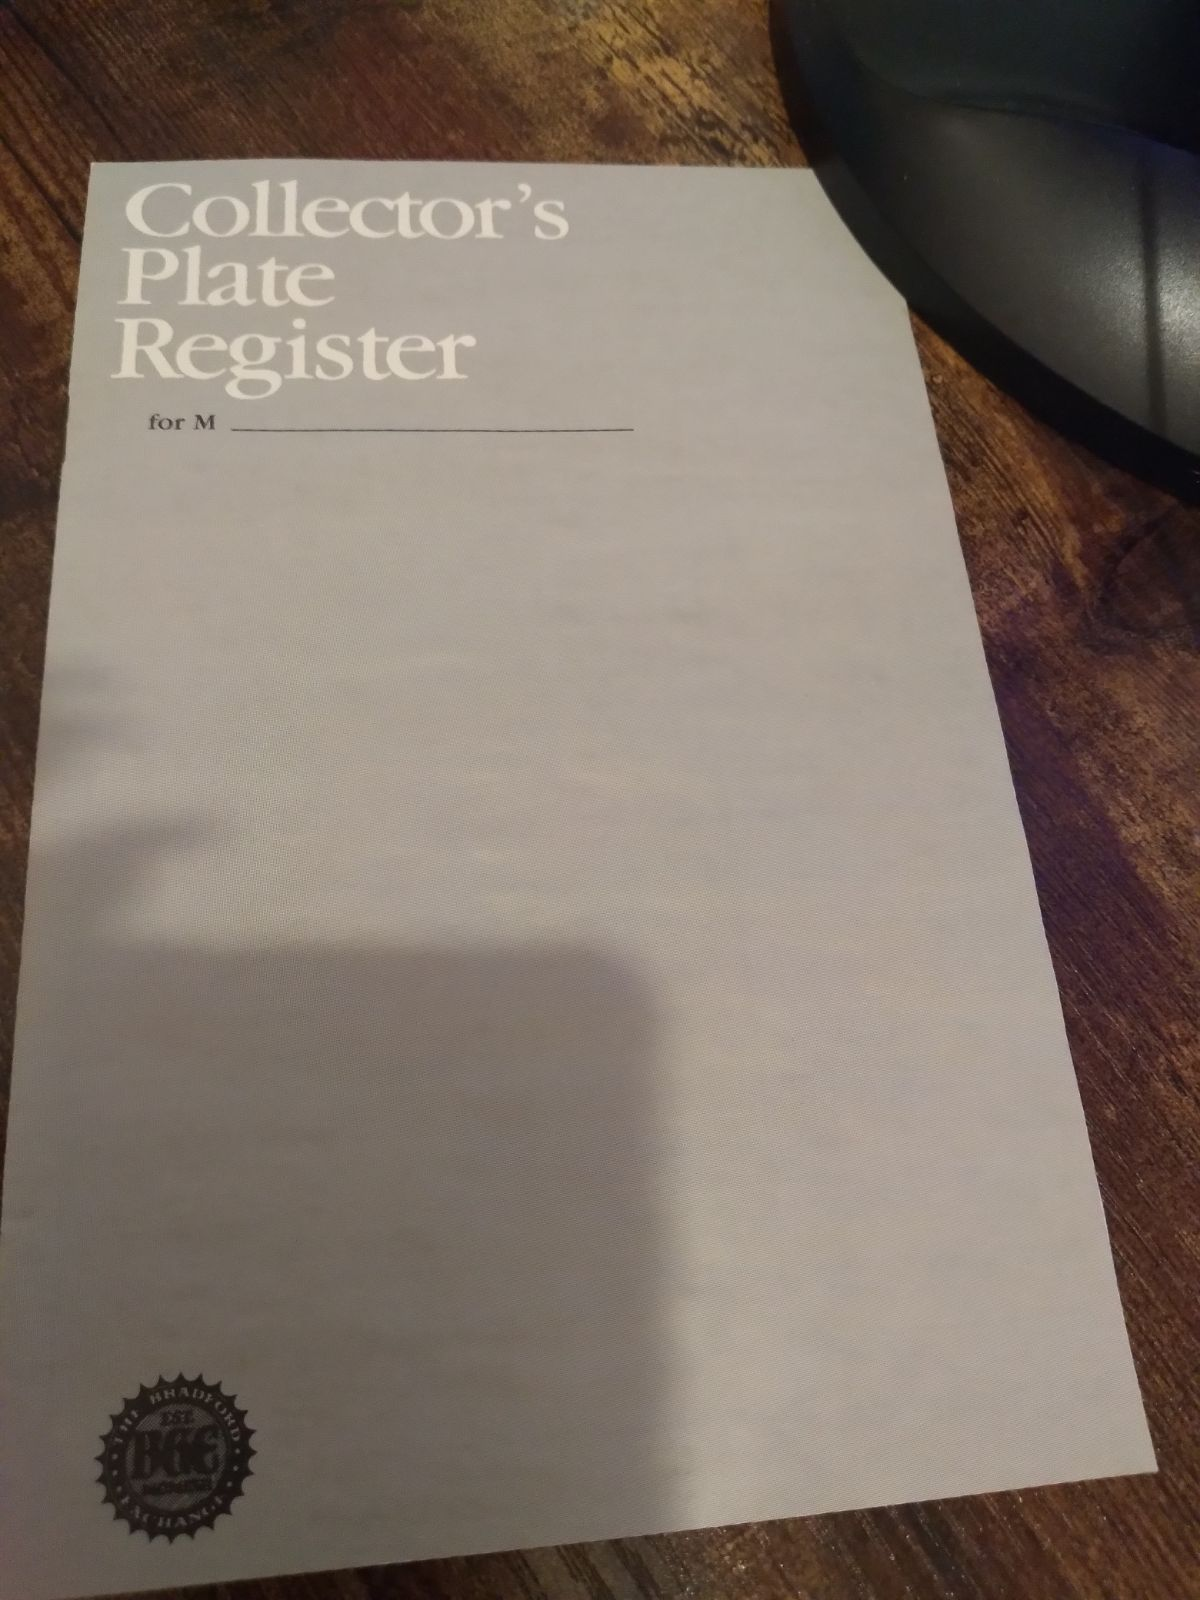 Vintage Collection Plates from the Bradf